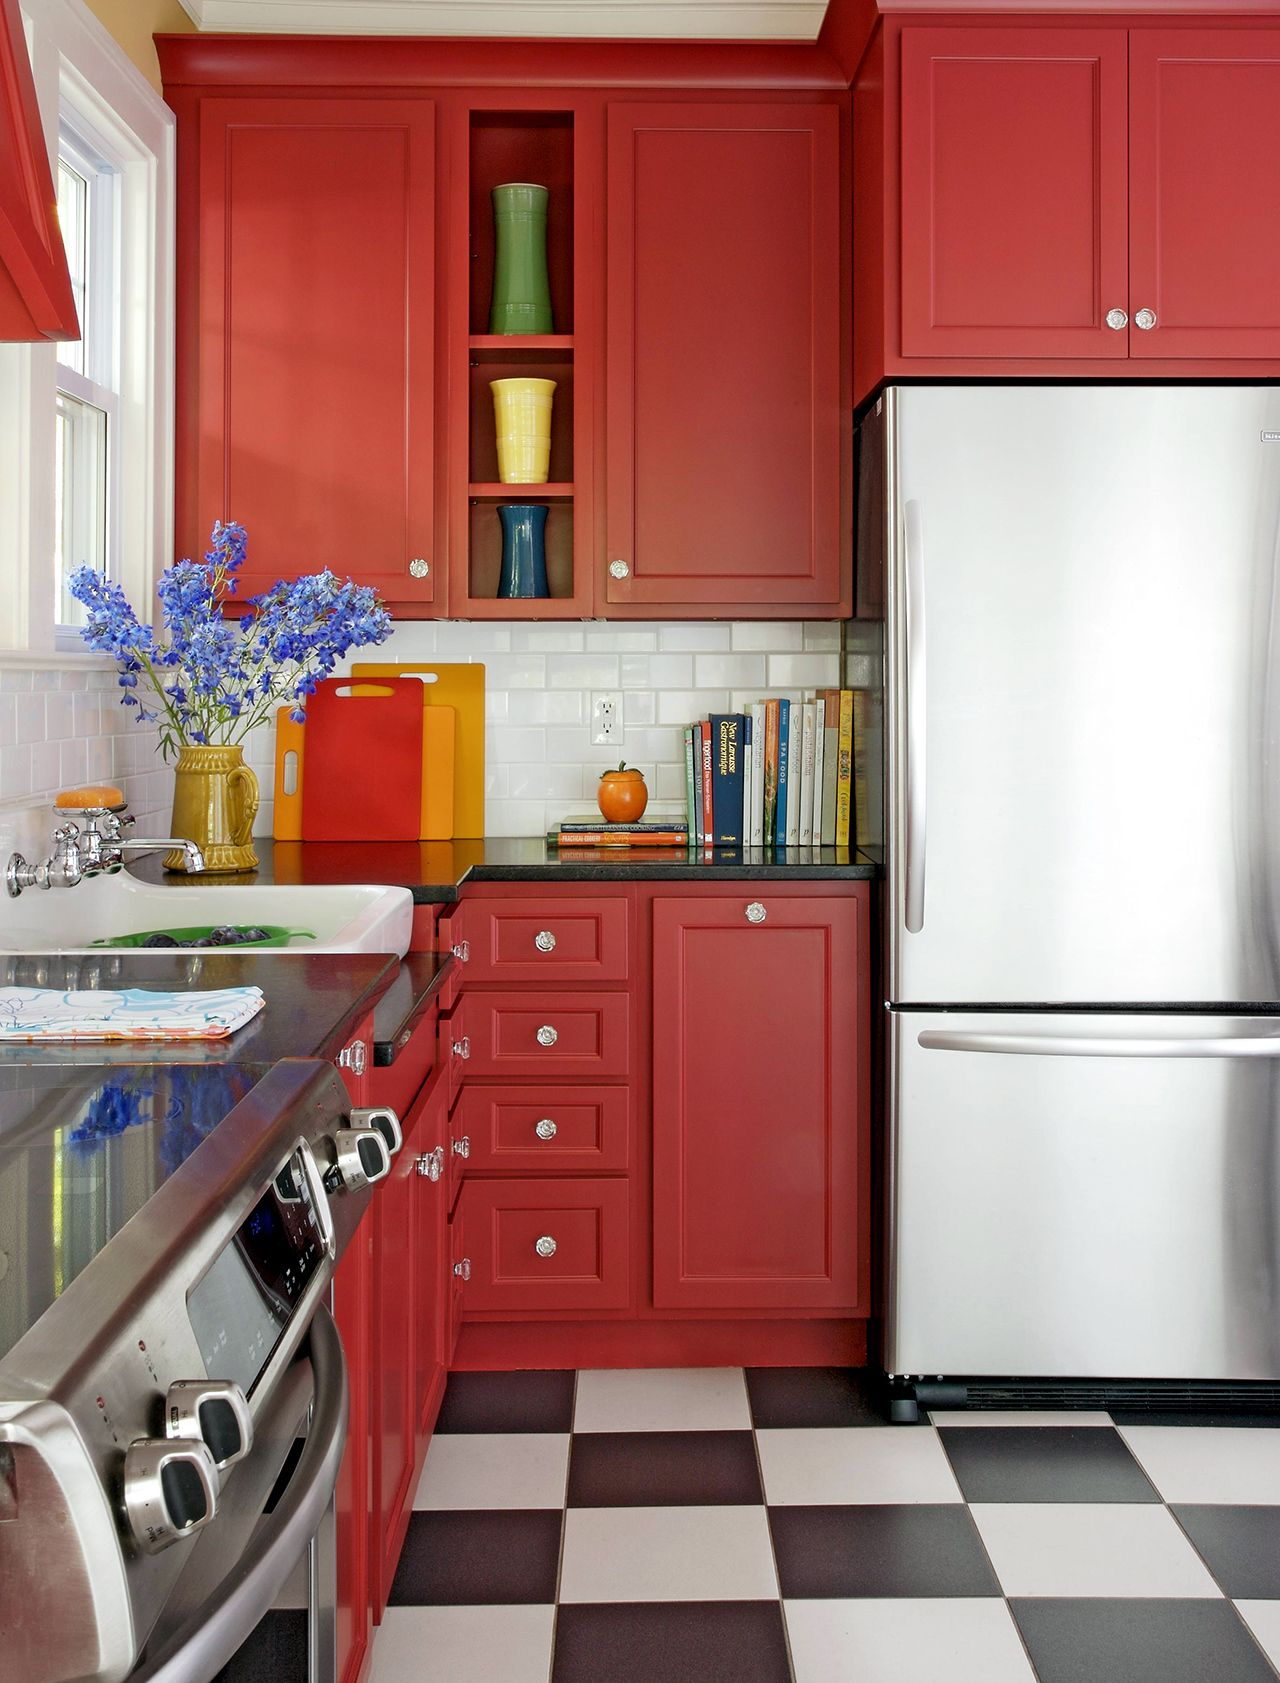 What Colors Go With Red 20 Knockout Combinations To Consider In 2020 Beautiful Kitchen Cabinets Red Kitchen Cabinets Kitchen Cabinet Colors